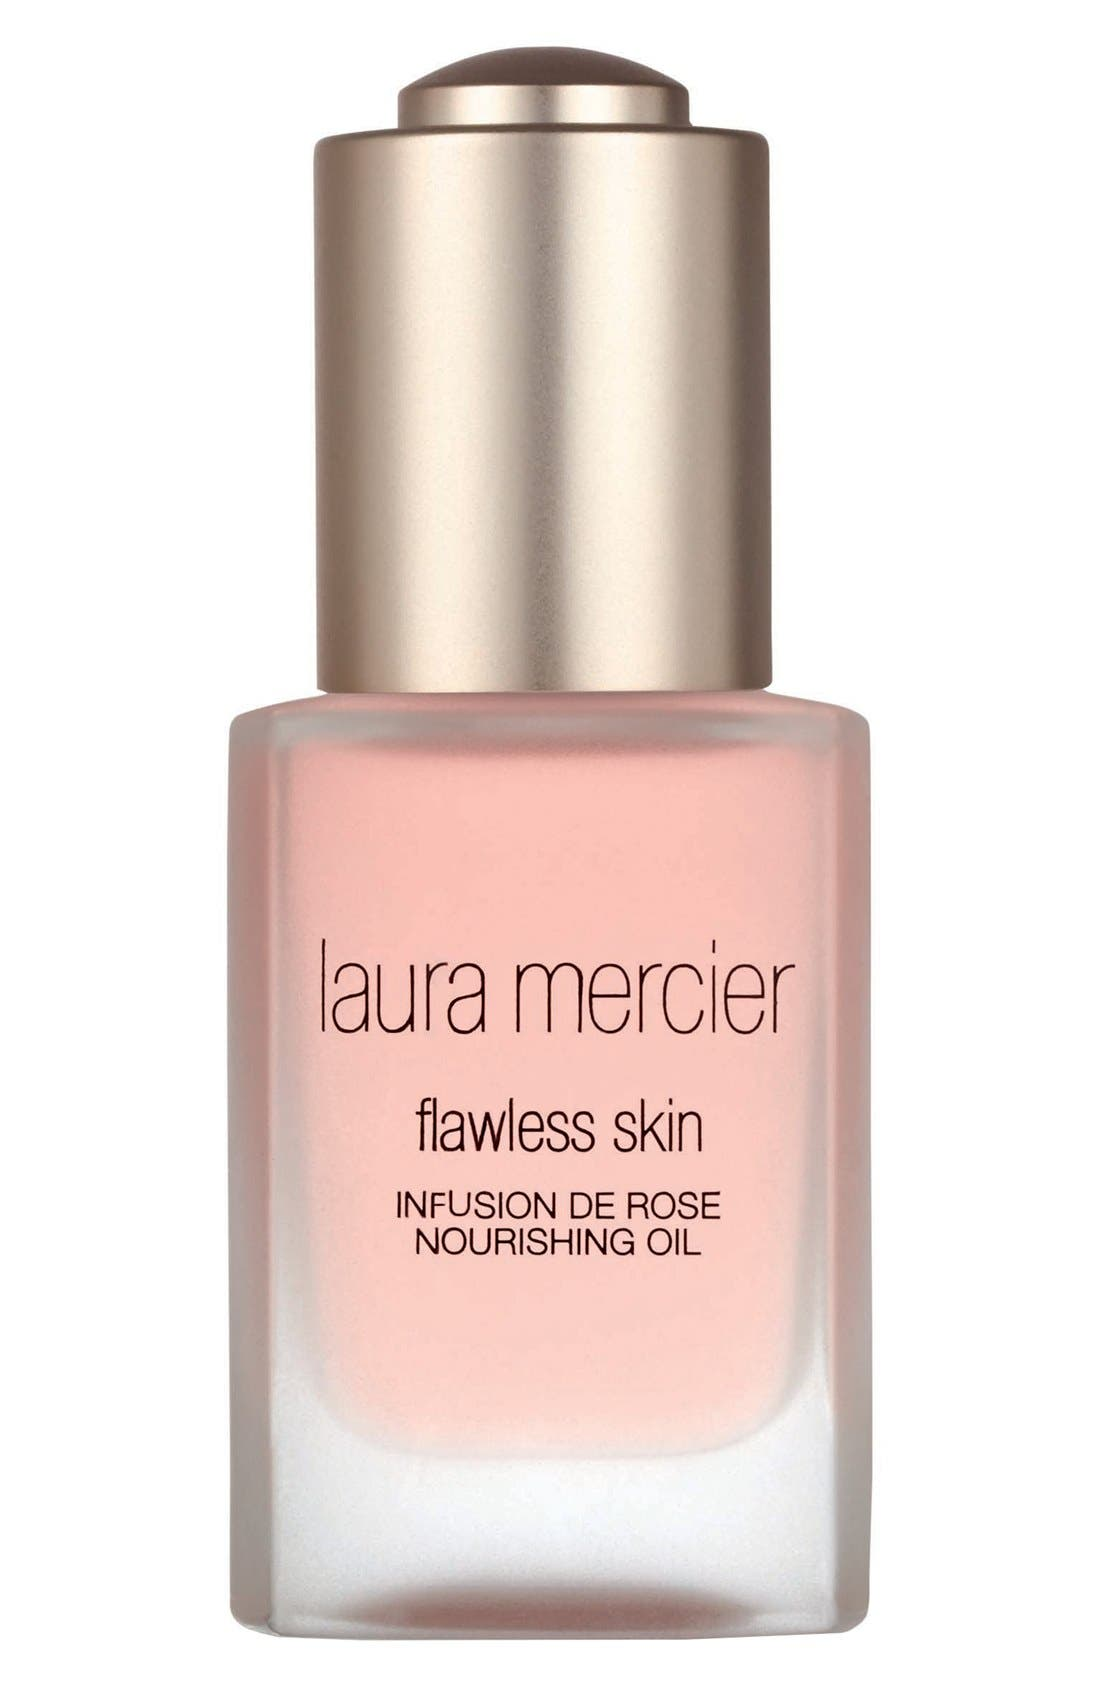 'Flawless Skin' Infusion de Rose Nourishing Oil,                             Main thumbnail 1, color,                             NO COLOR